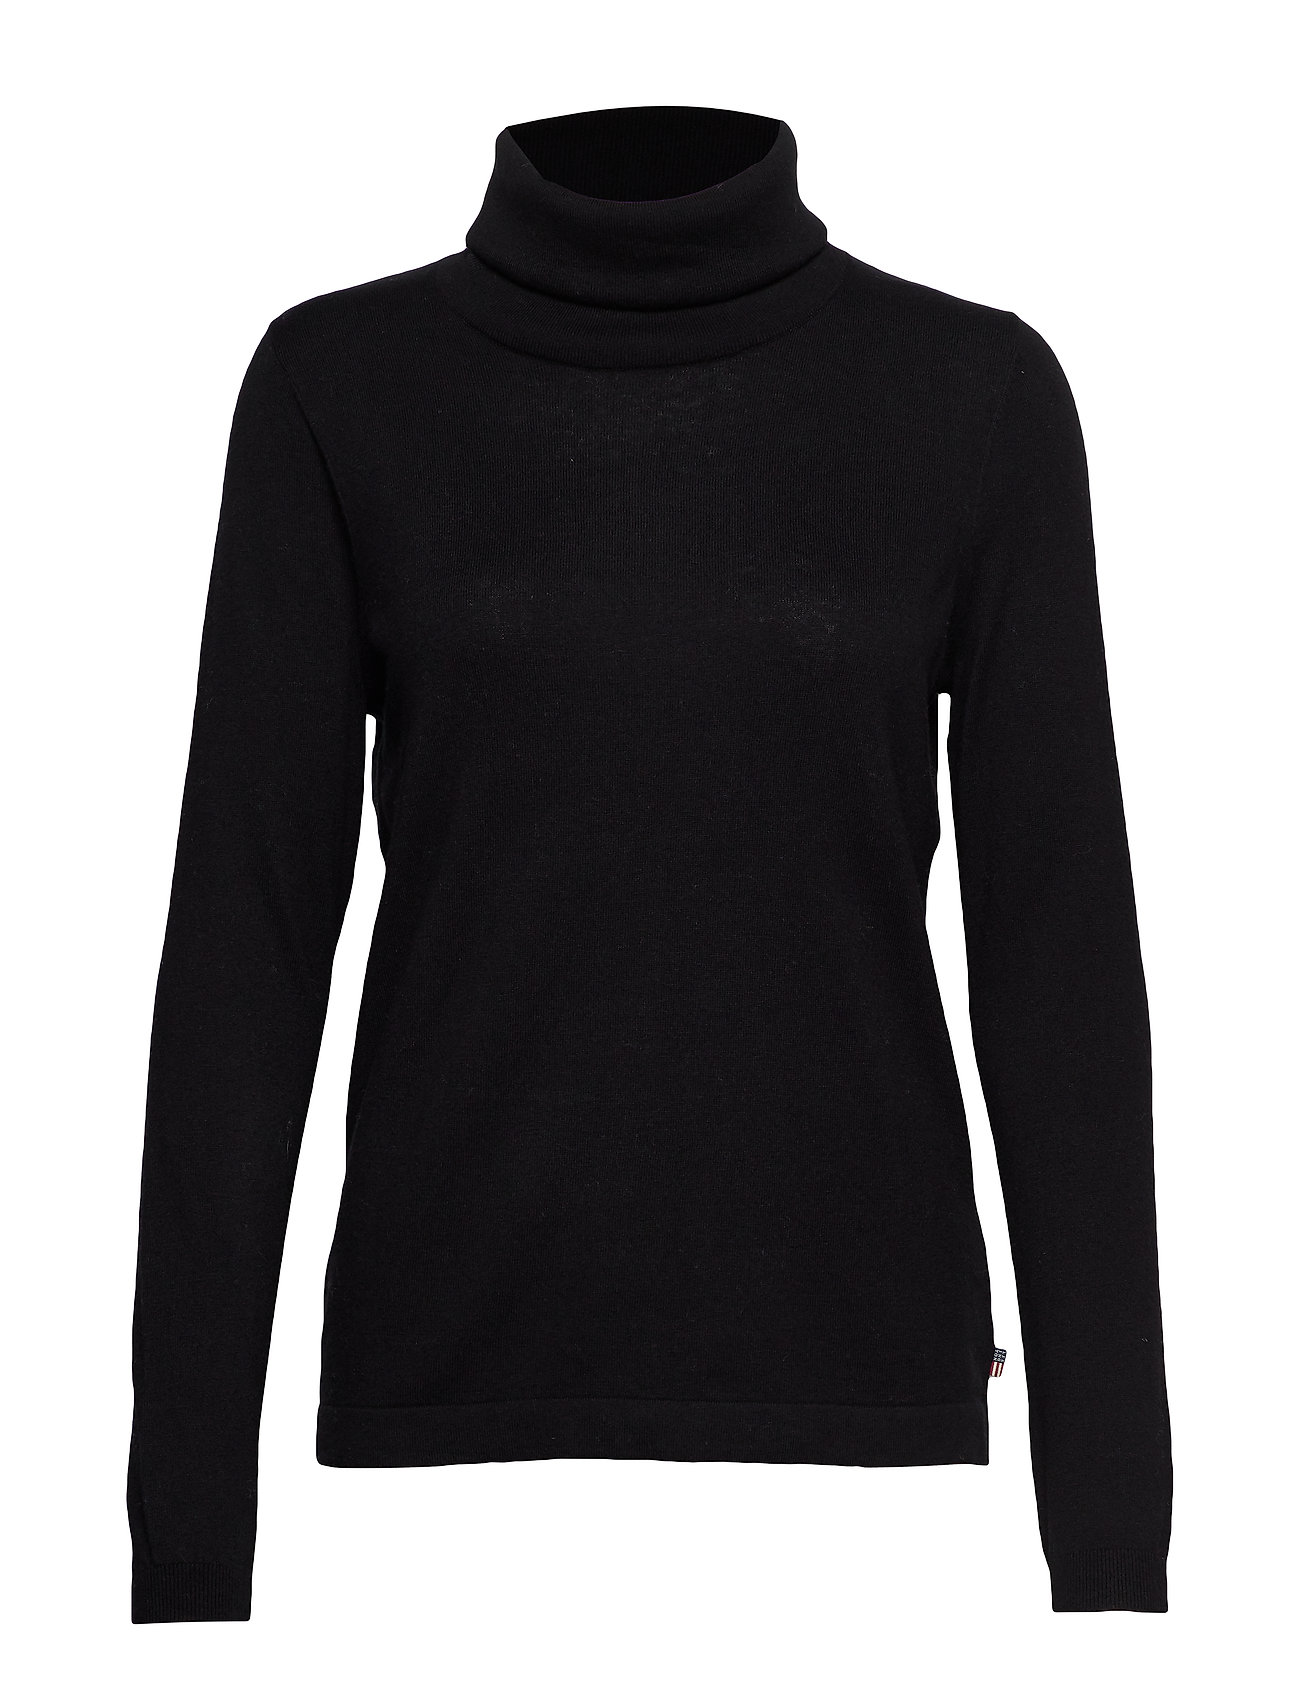 Lexington Clothing Francoise Roll Neck Sweater - BLACK